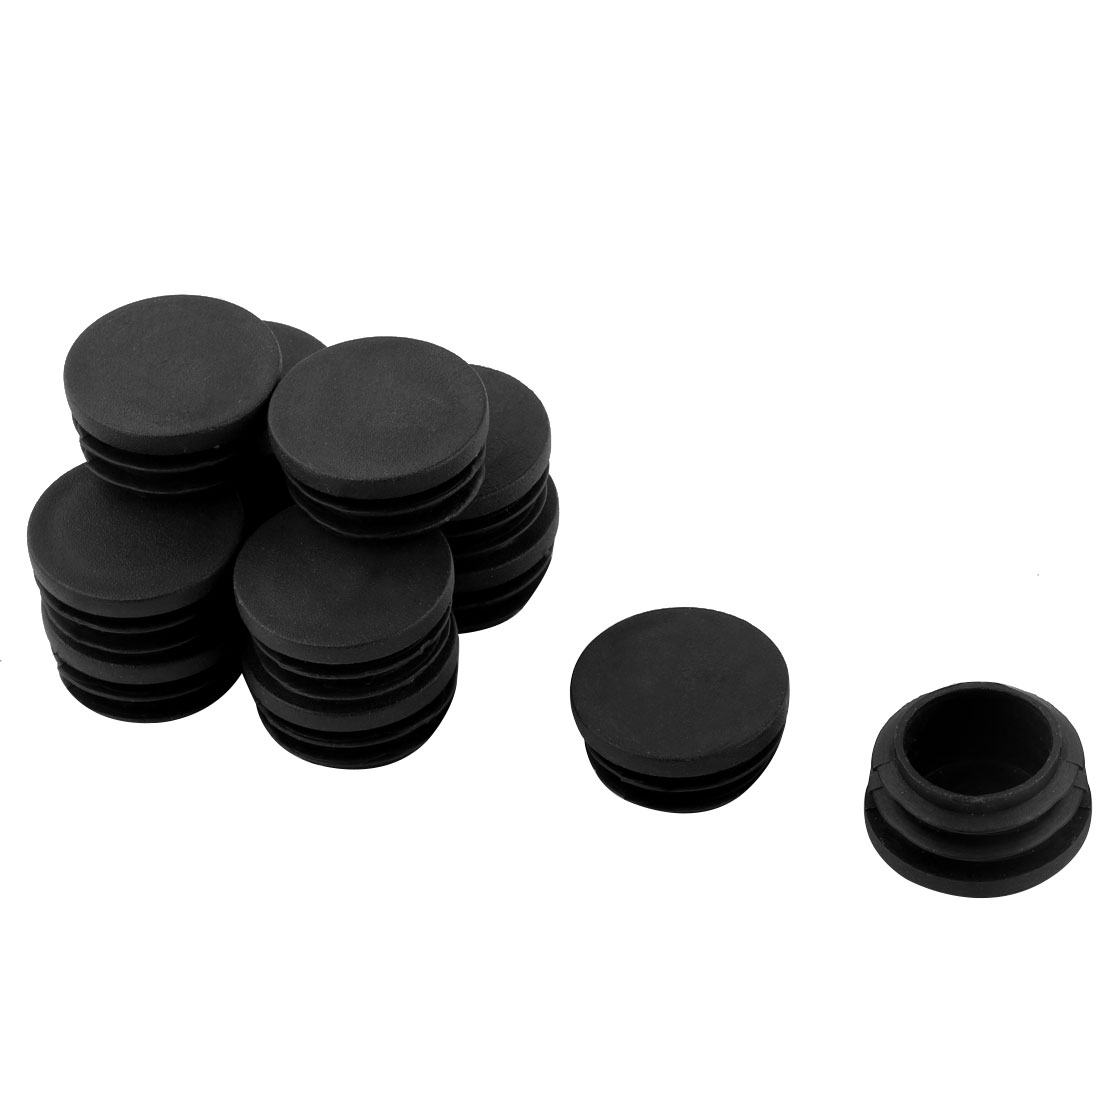 12 Pcs Plastic 30mm Thread Dia Tubing Tube Insert Blanking End Cap Cover